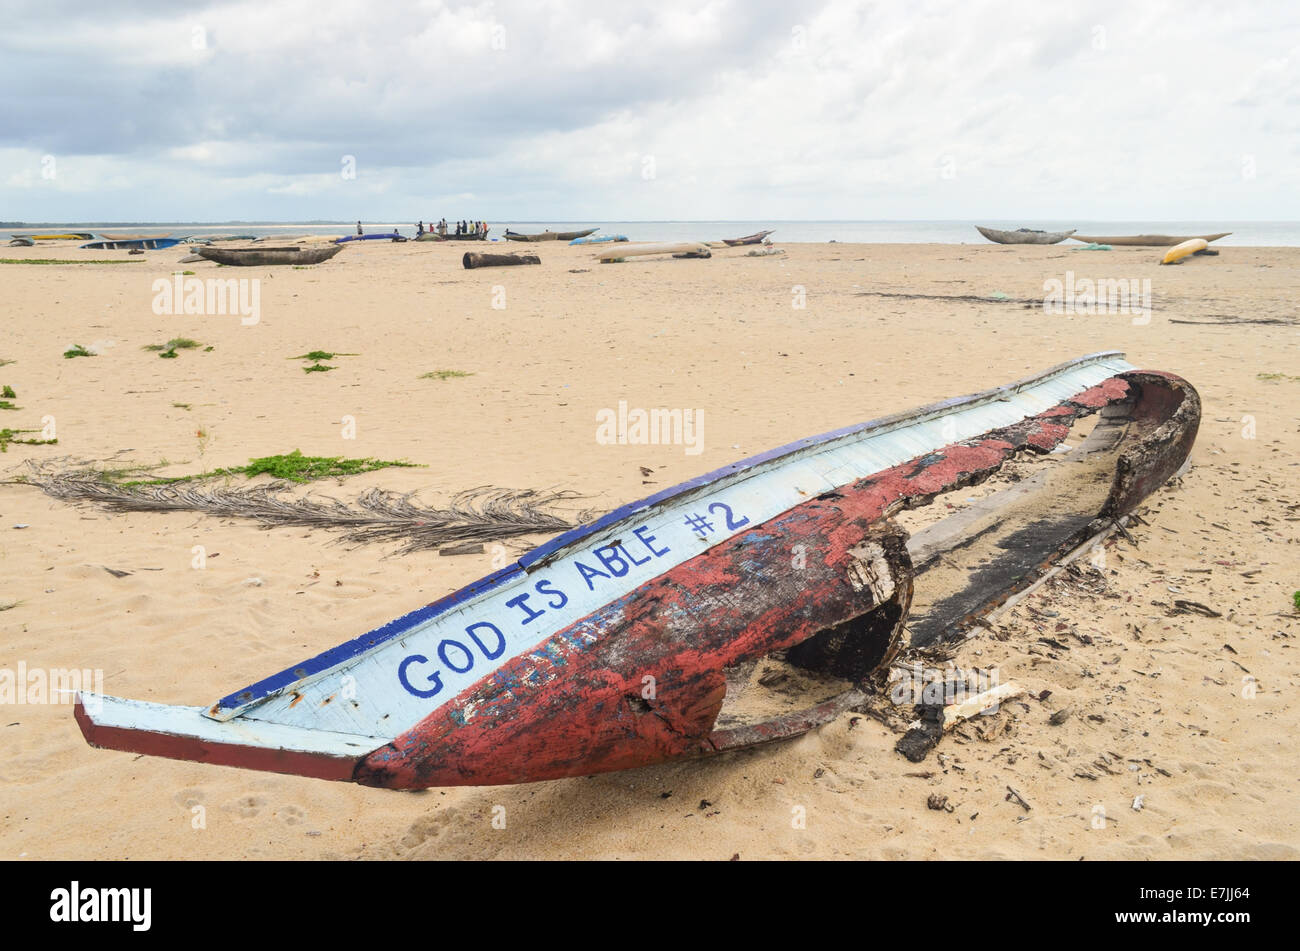 Wooden fishing boat wrecked on the beach of Robertsport, Liberia, reading 'God Is Able' - Stock Image